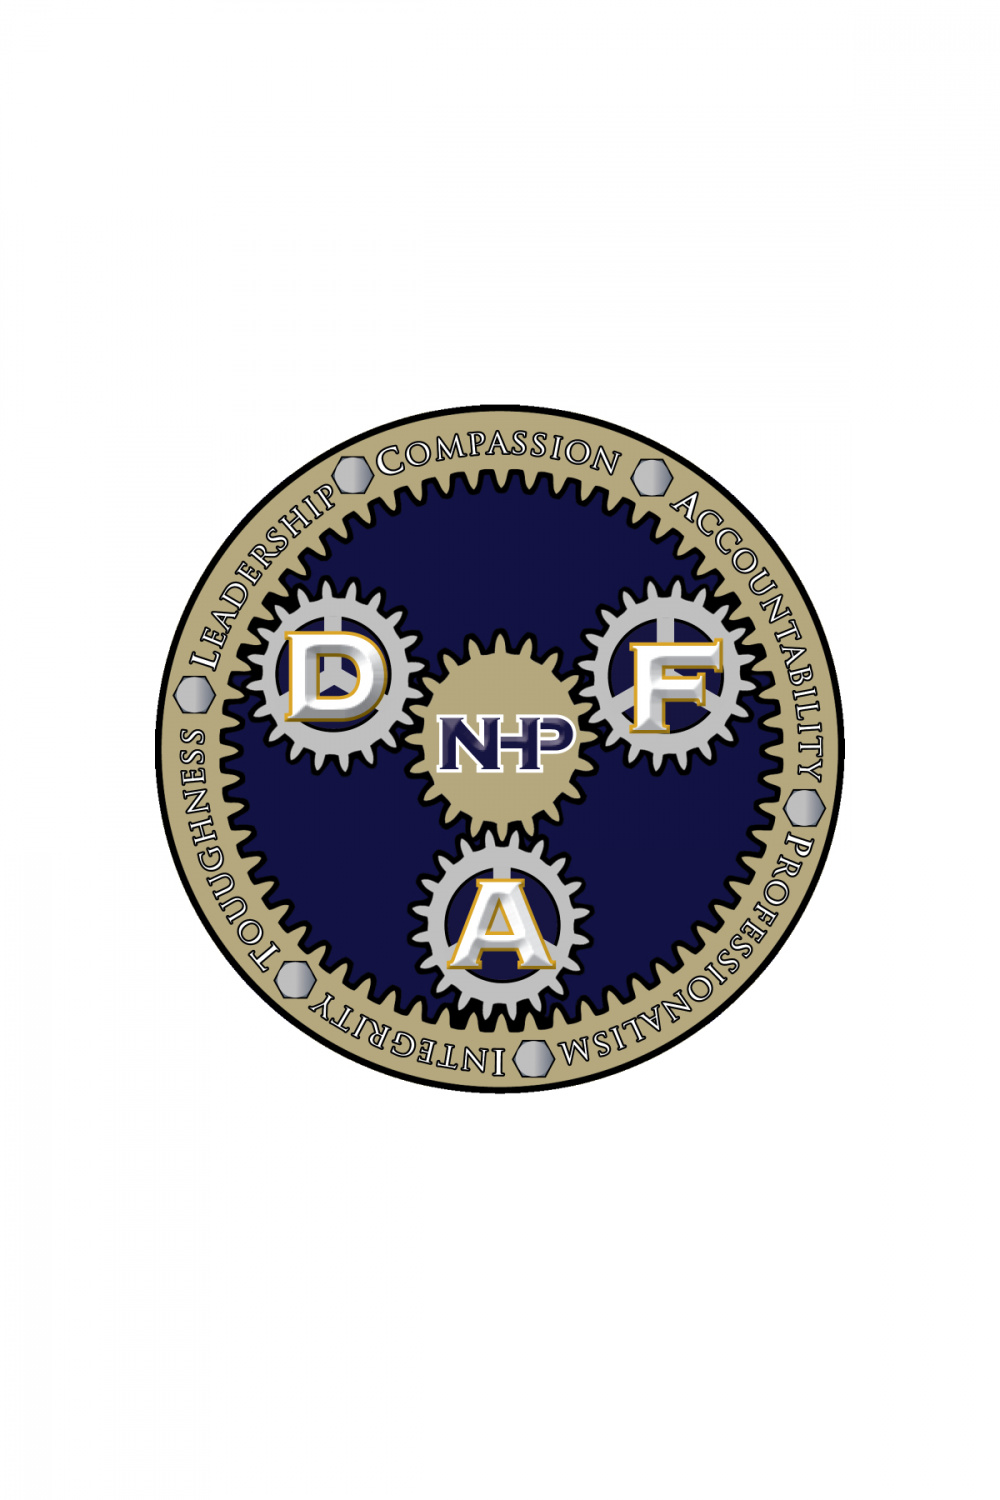 Director for Administration Coin